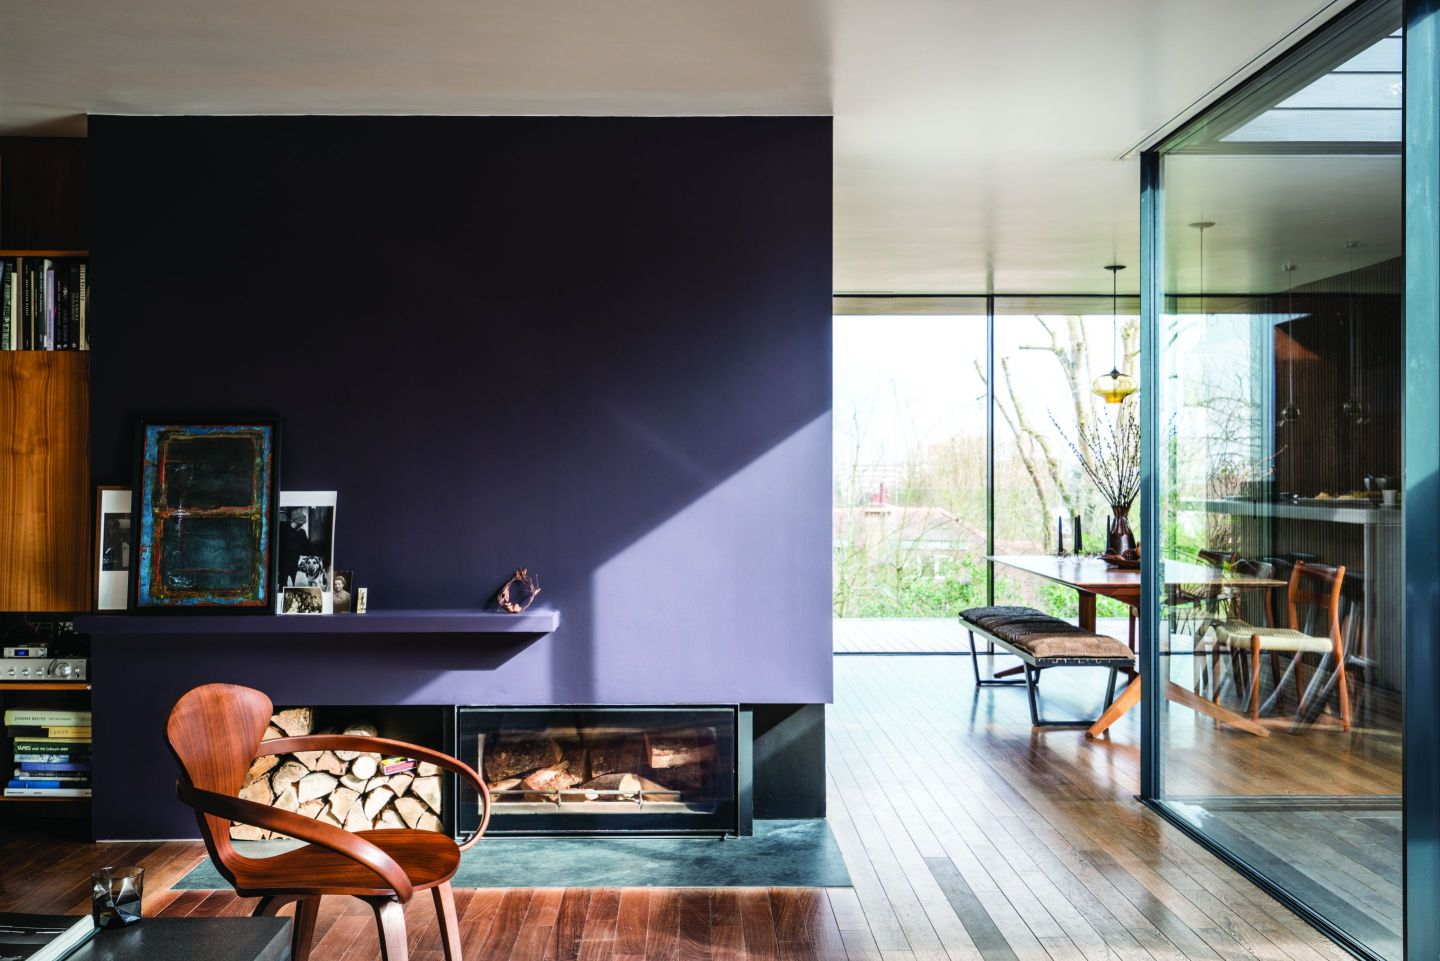 FarrowBall_2604401_PaeanBlackNo294.jpg-1440x961 Paint Inspiration: 20 Colorful Rooms We Love